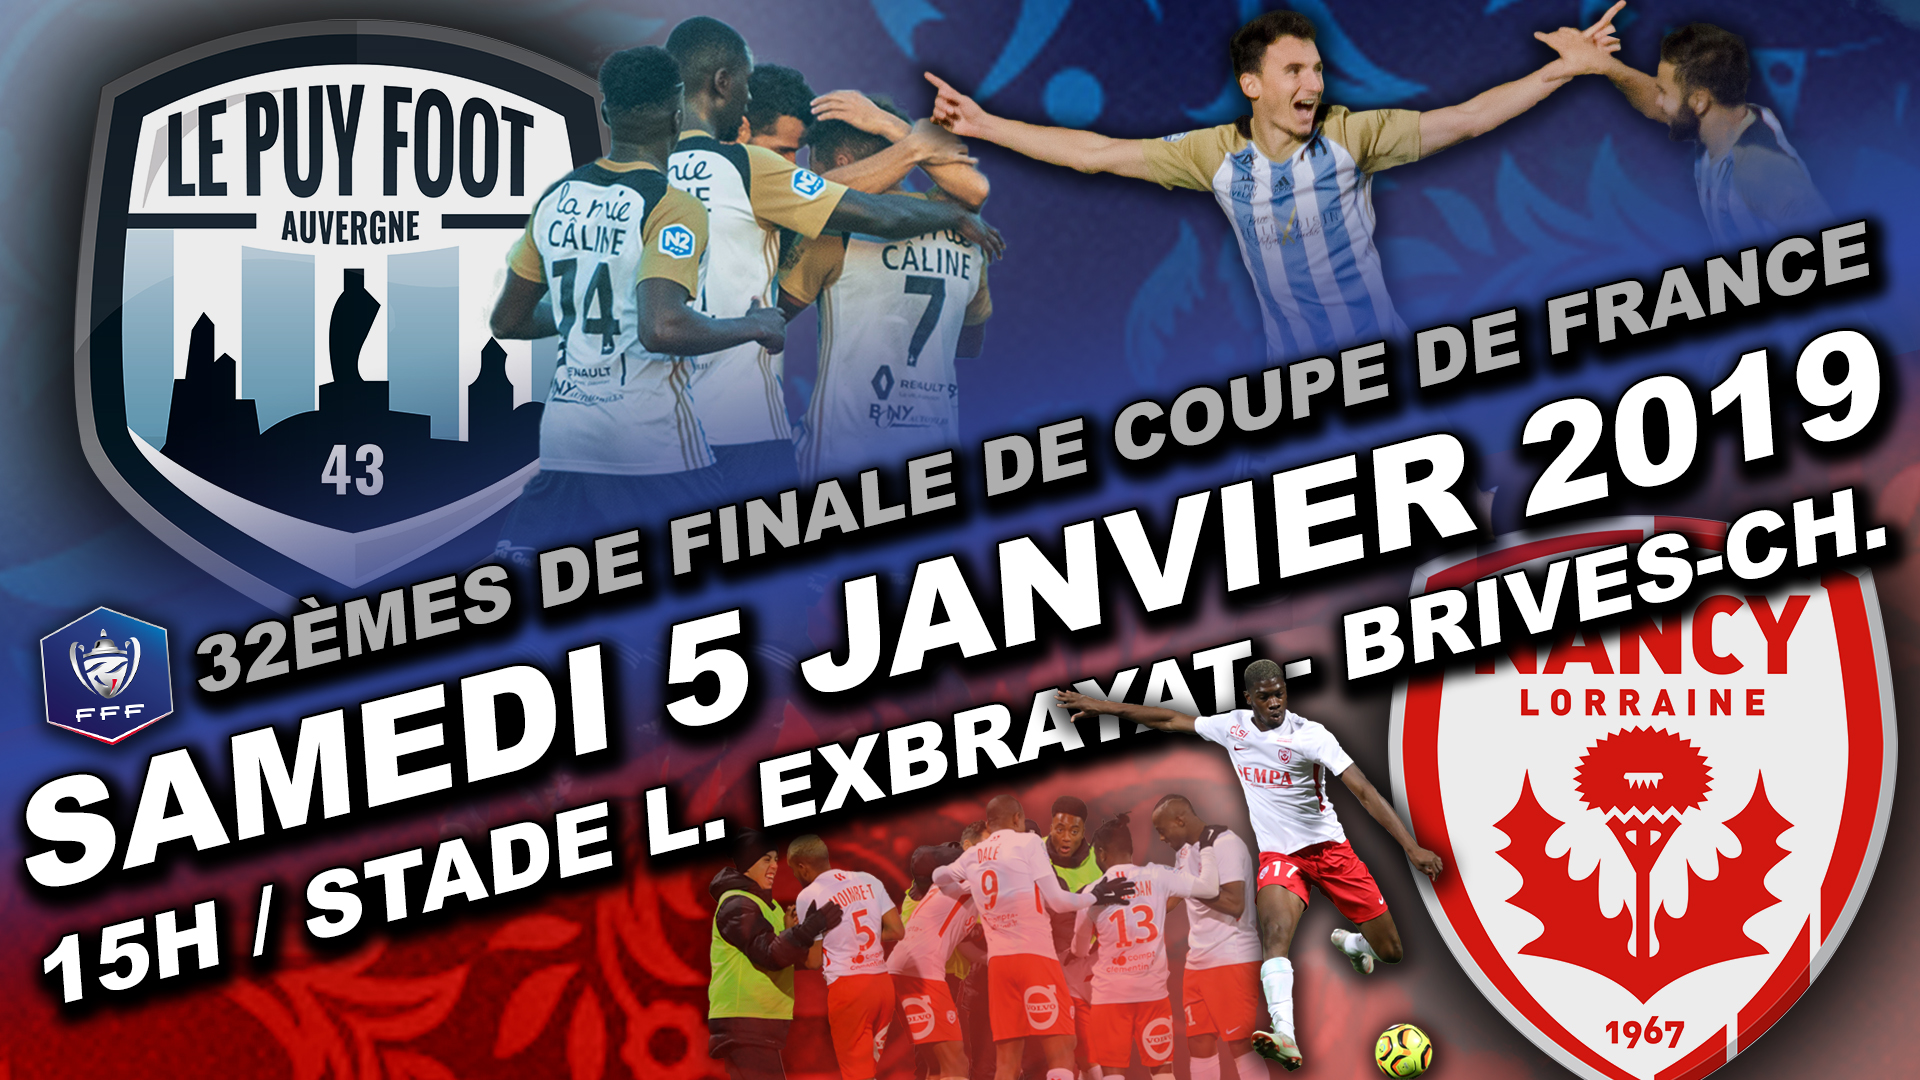 32eme de finale coupe de France le puy foot 43-nancy 15h brives charensac stade exbrayat 050119 en direct